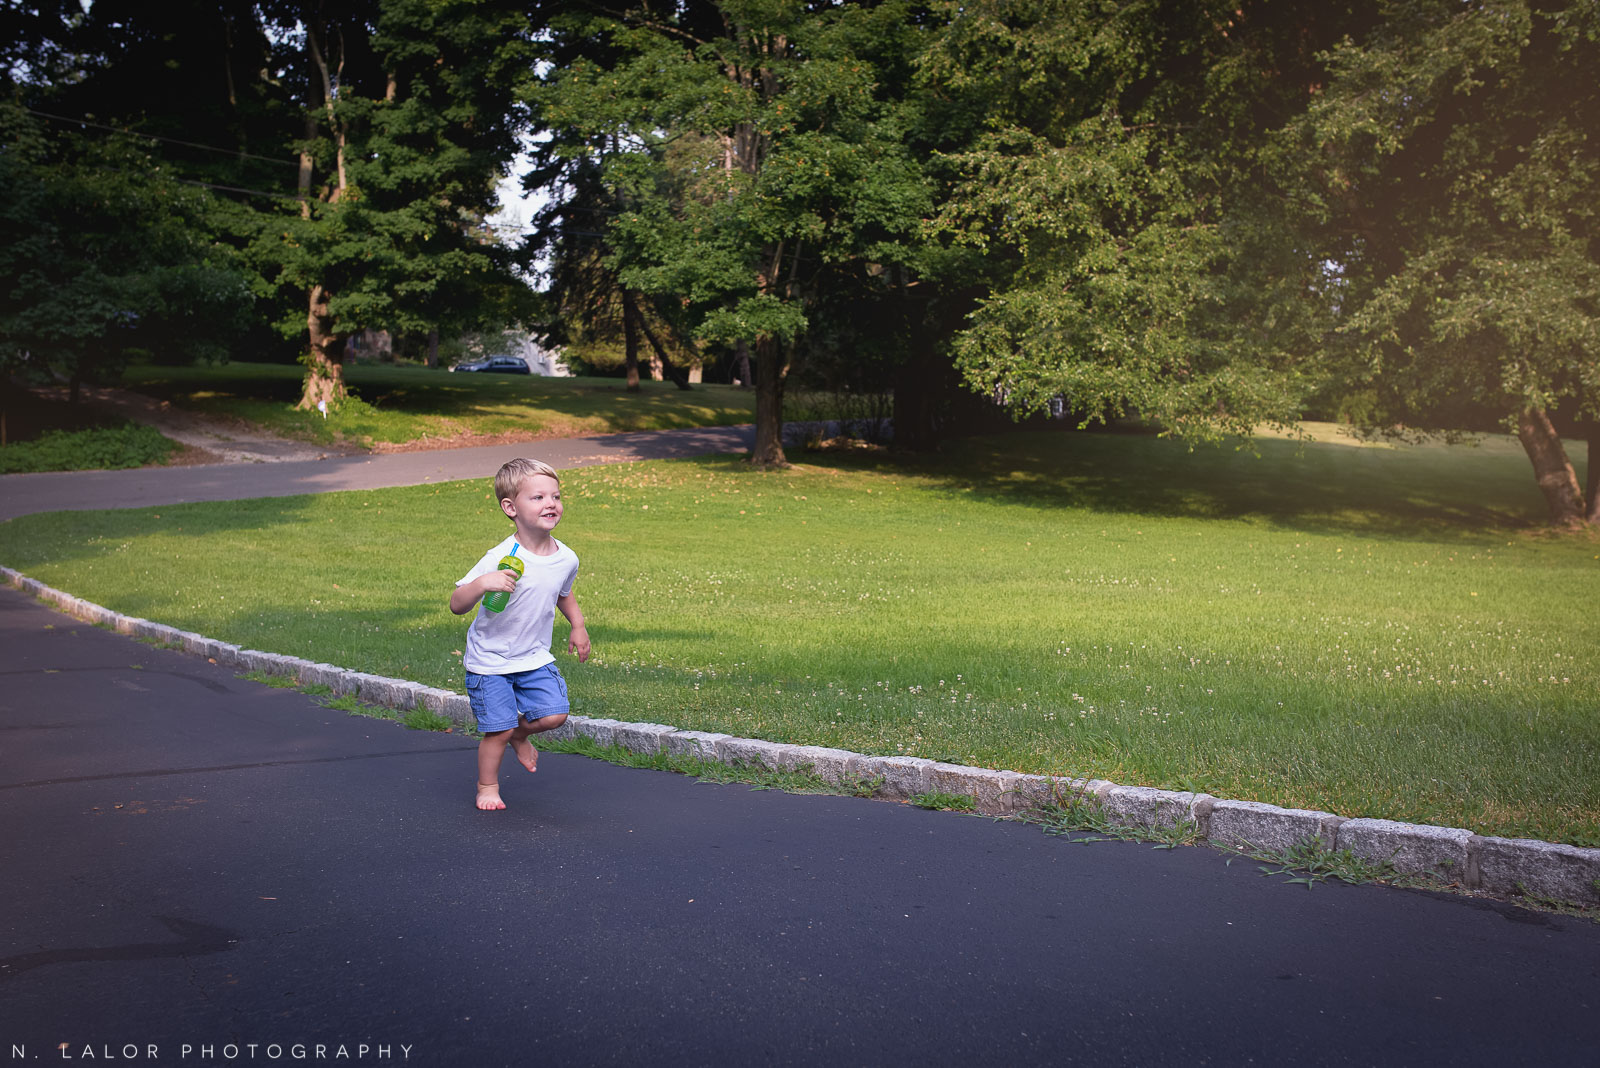 nlalor-photography-2015-one-morning-amy-documentary-photo-session-westport-connecticut-16.jpg